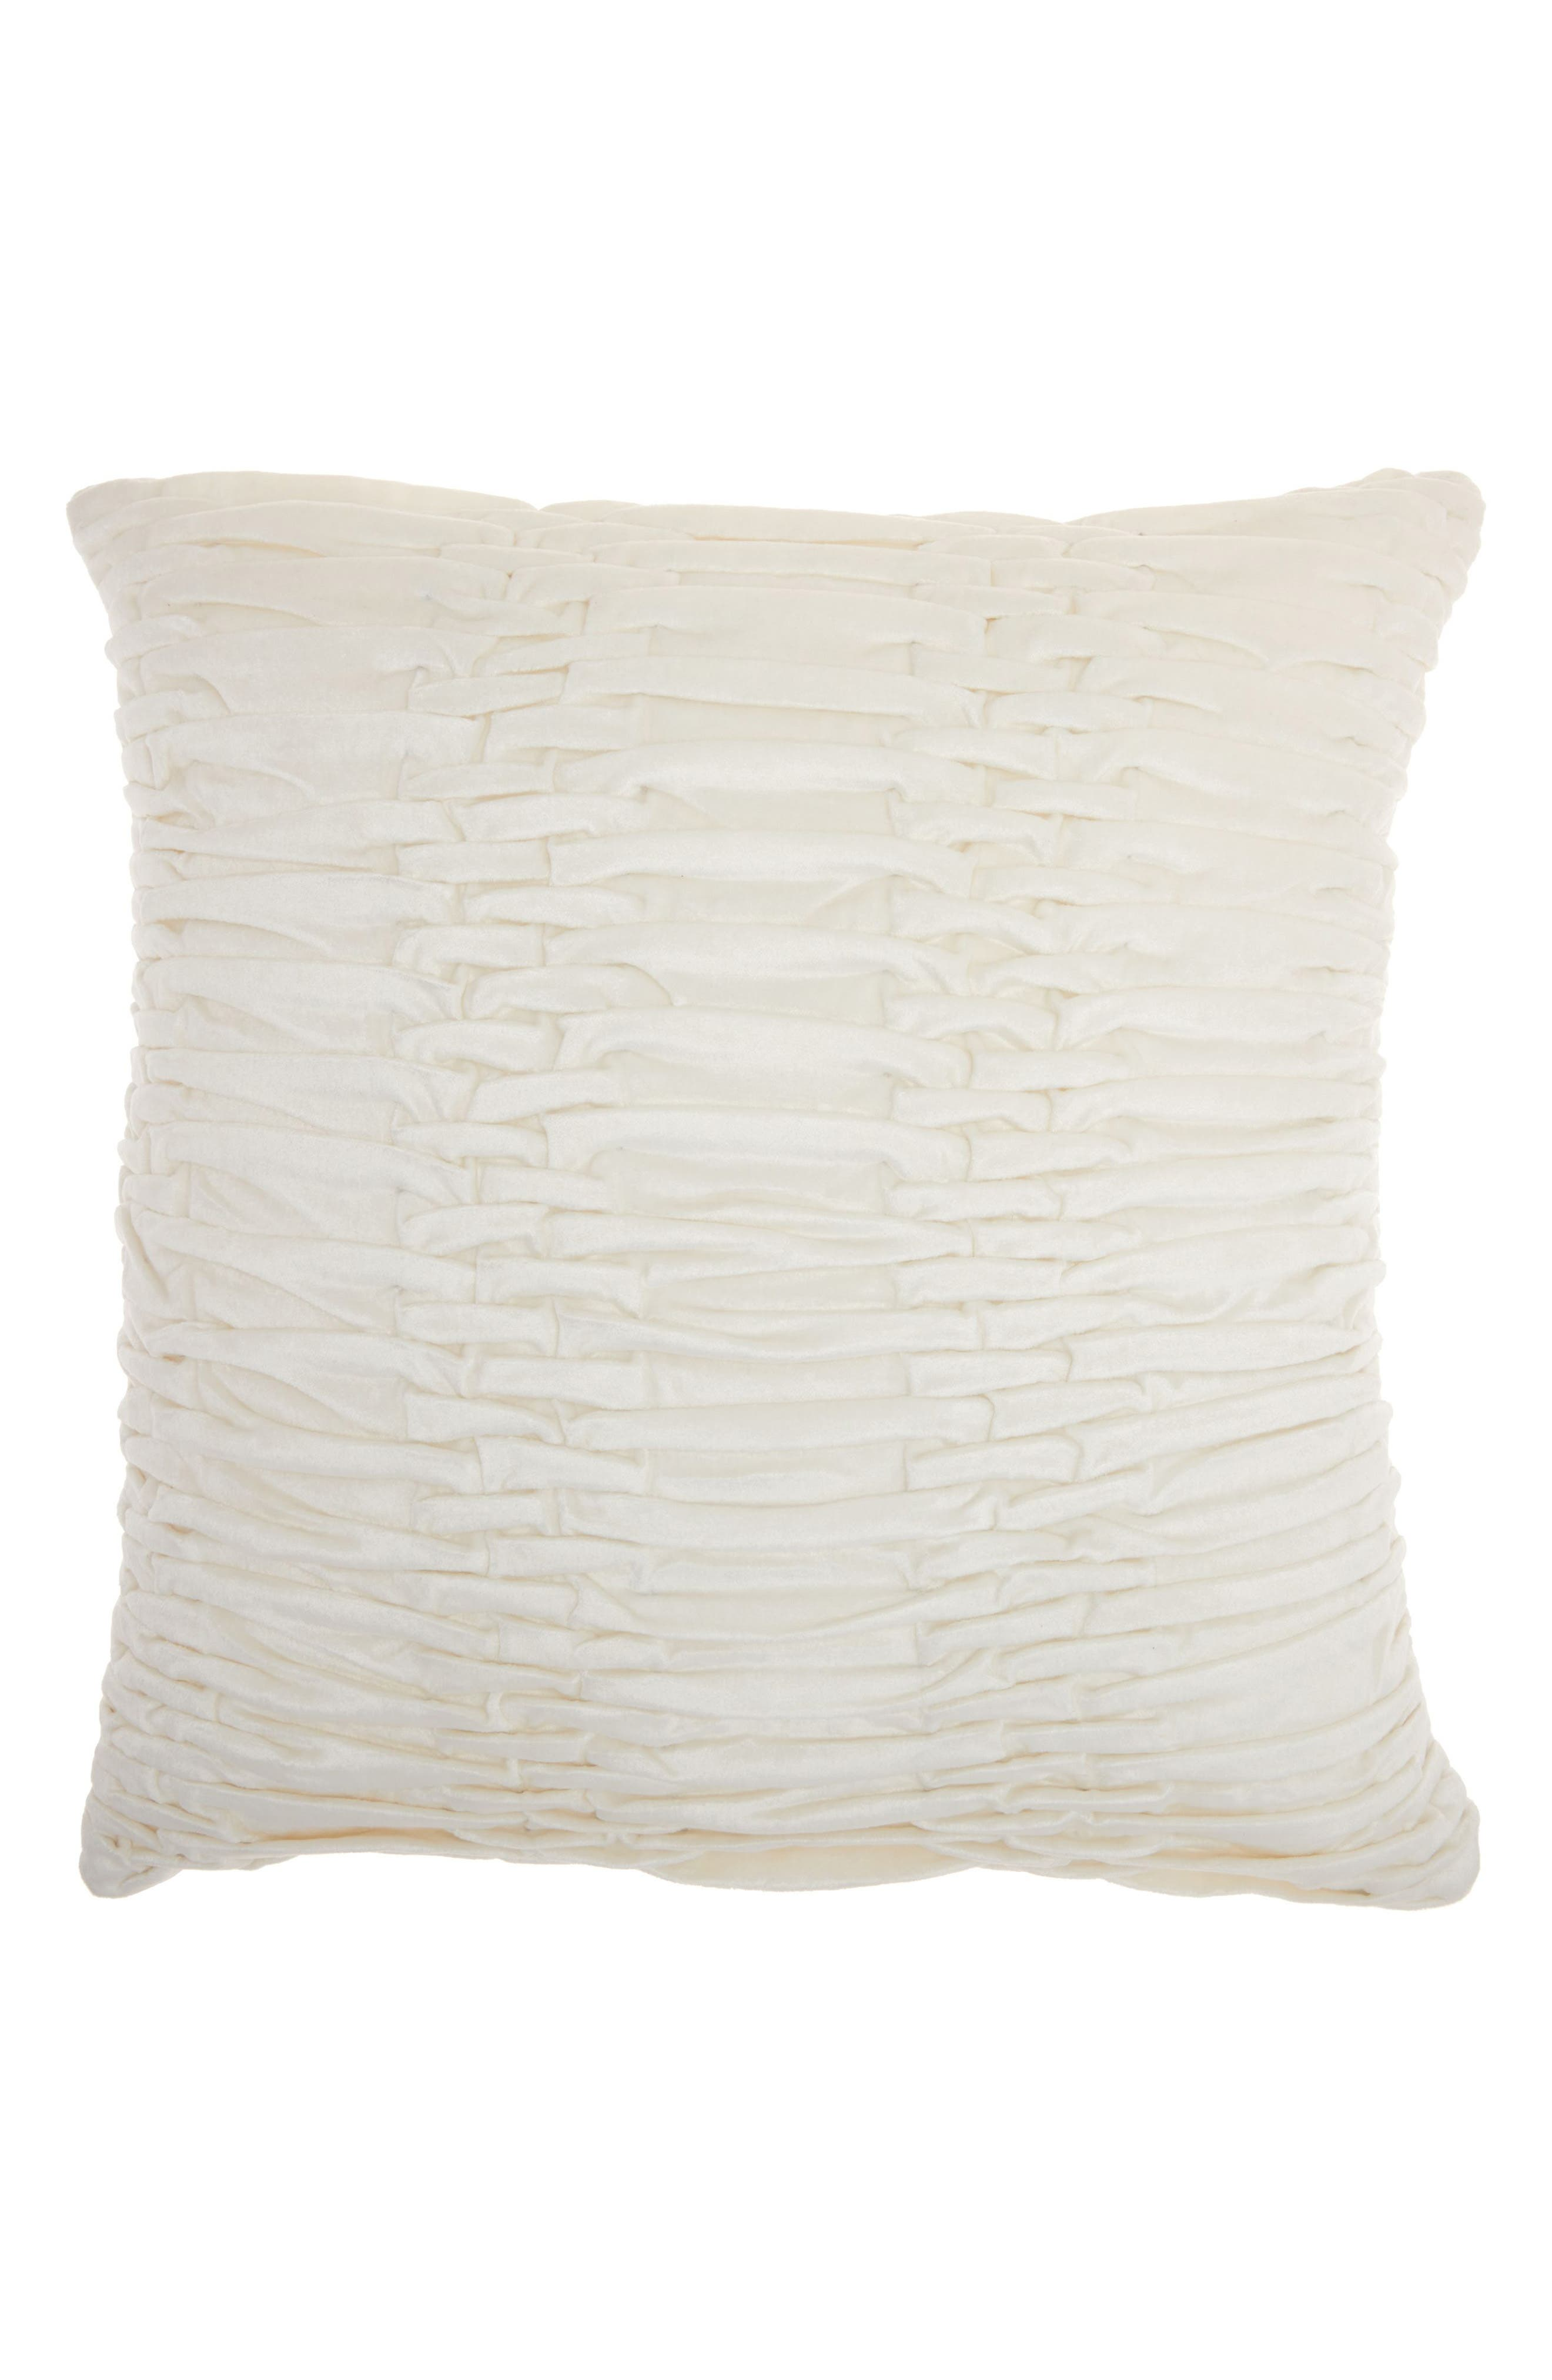 Pleated Velvet Accent Pillow,                             Main thumbnail 1, color,                             Cream